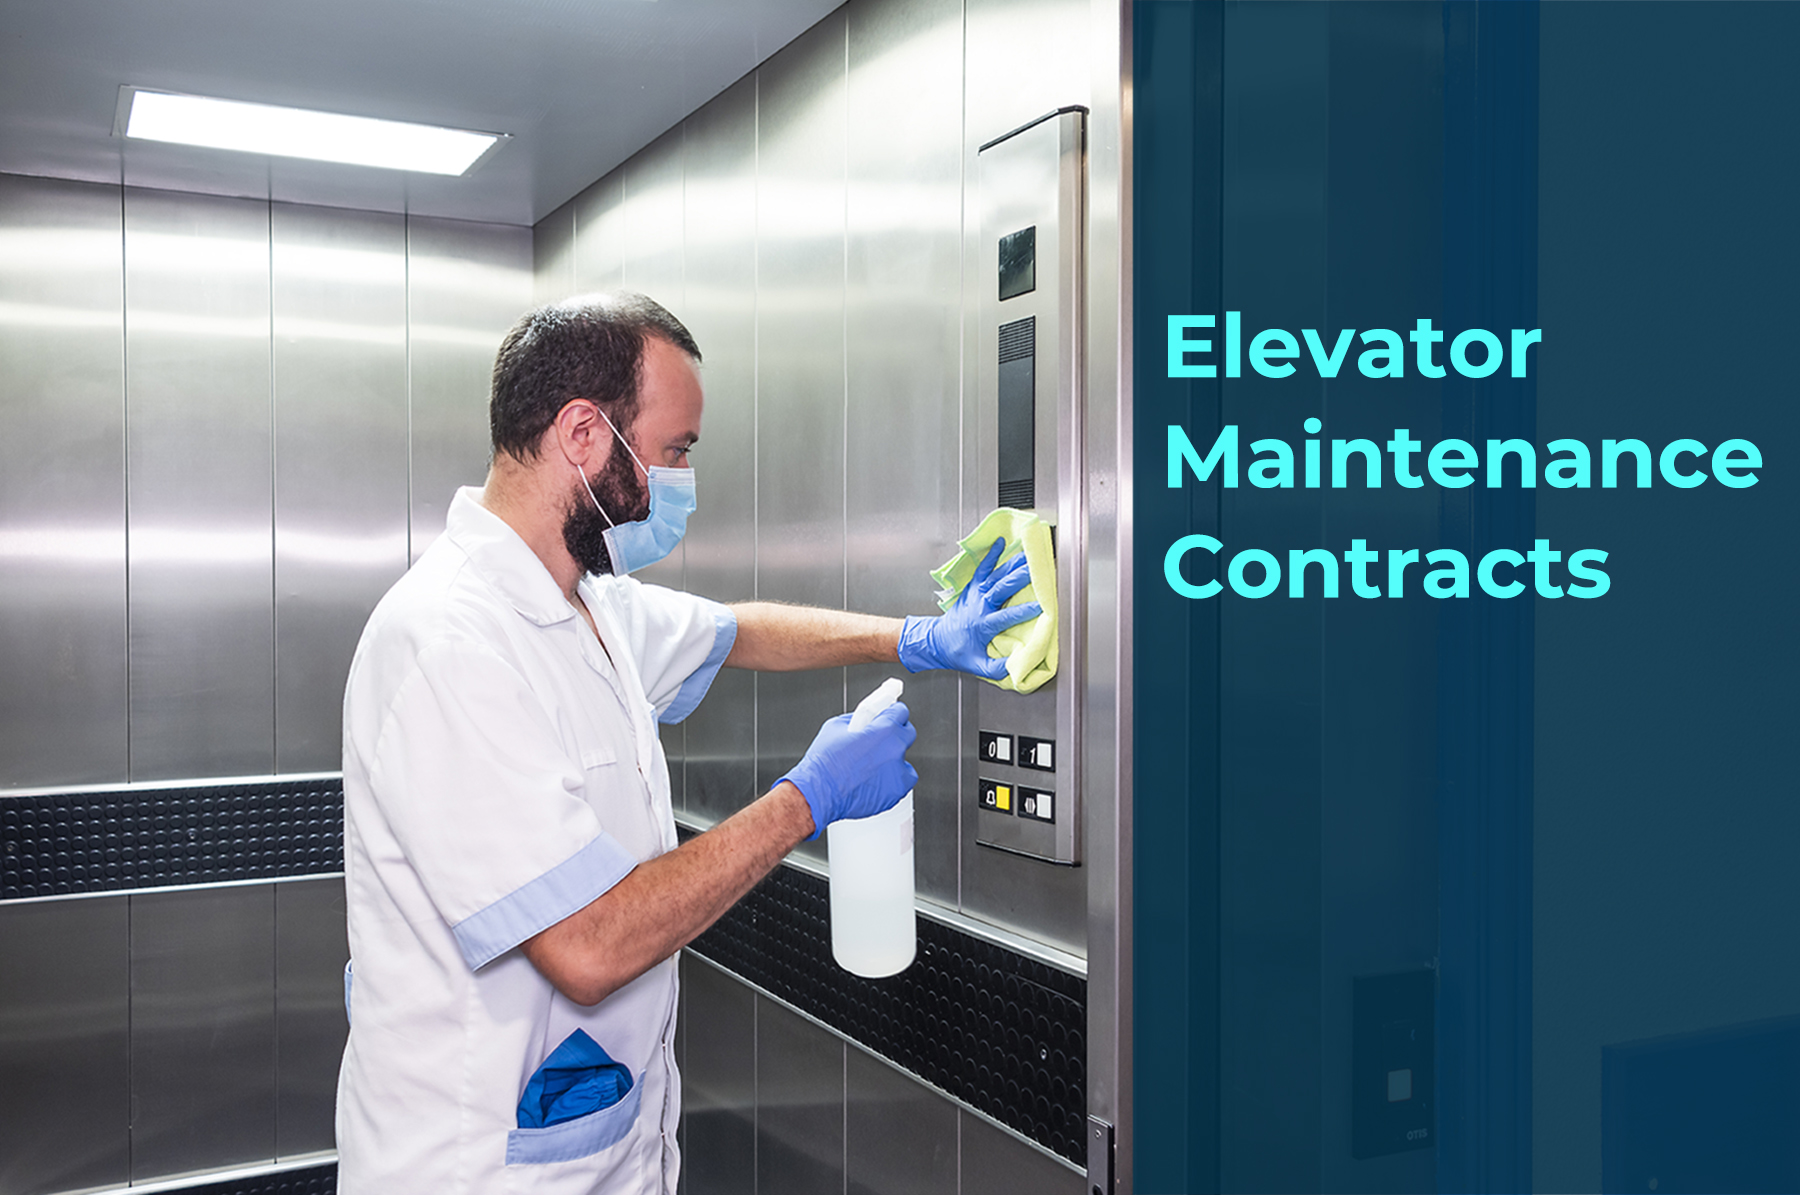 A man performing cleaning and disinfection in a elevator